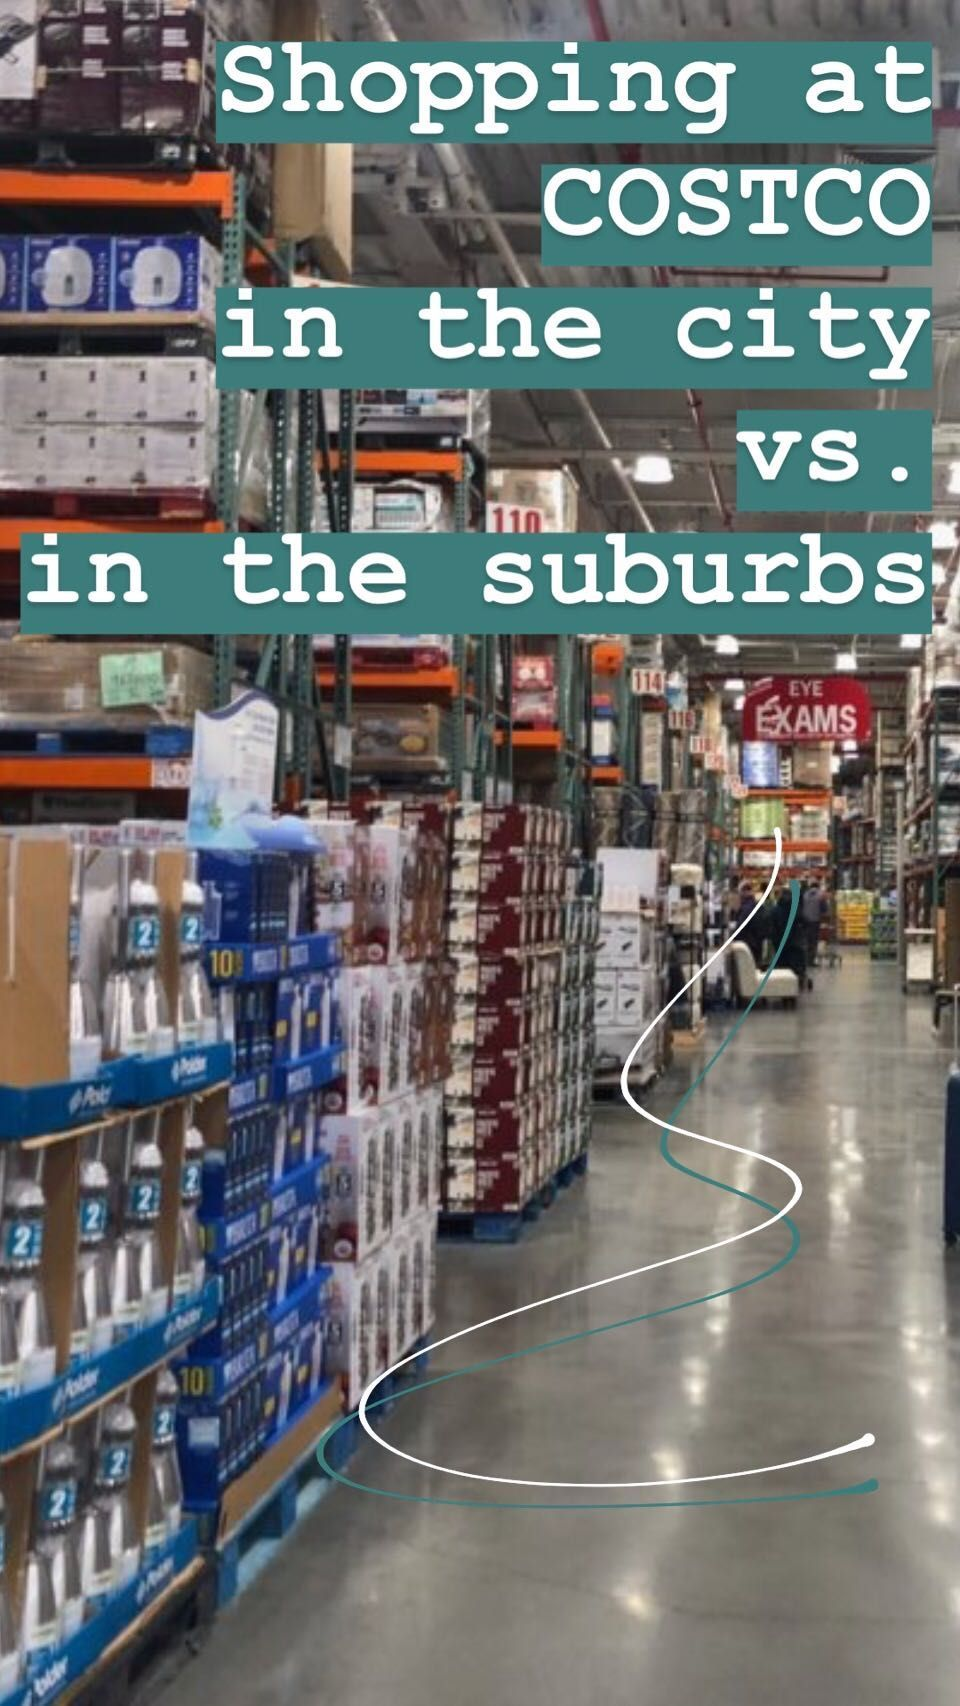 We compared shopping at Costco in the city and in the